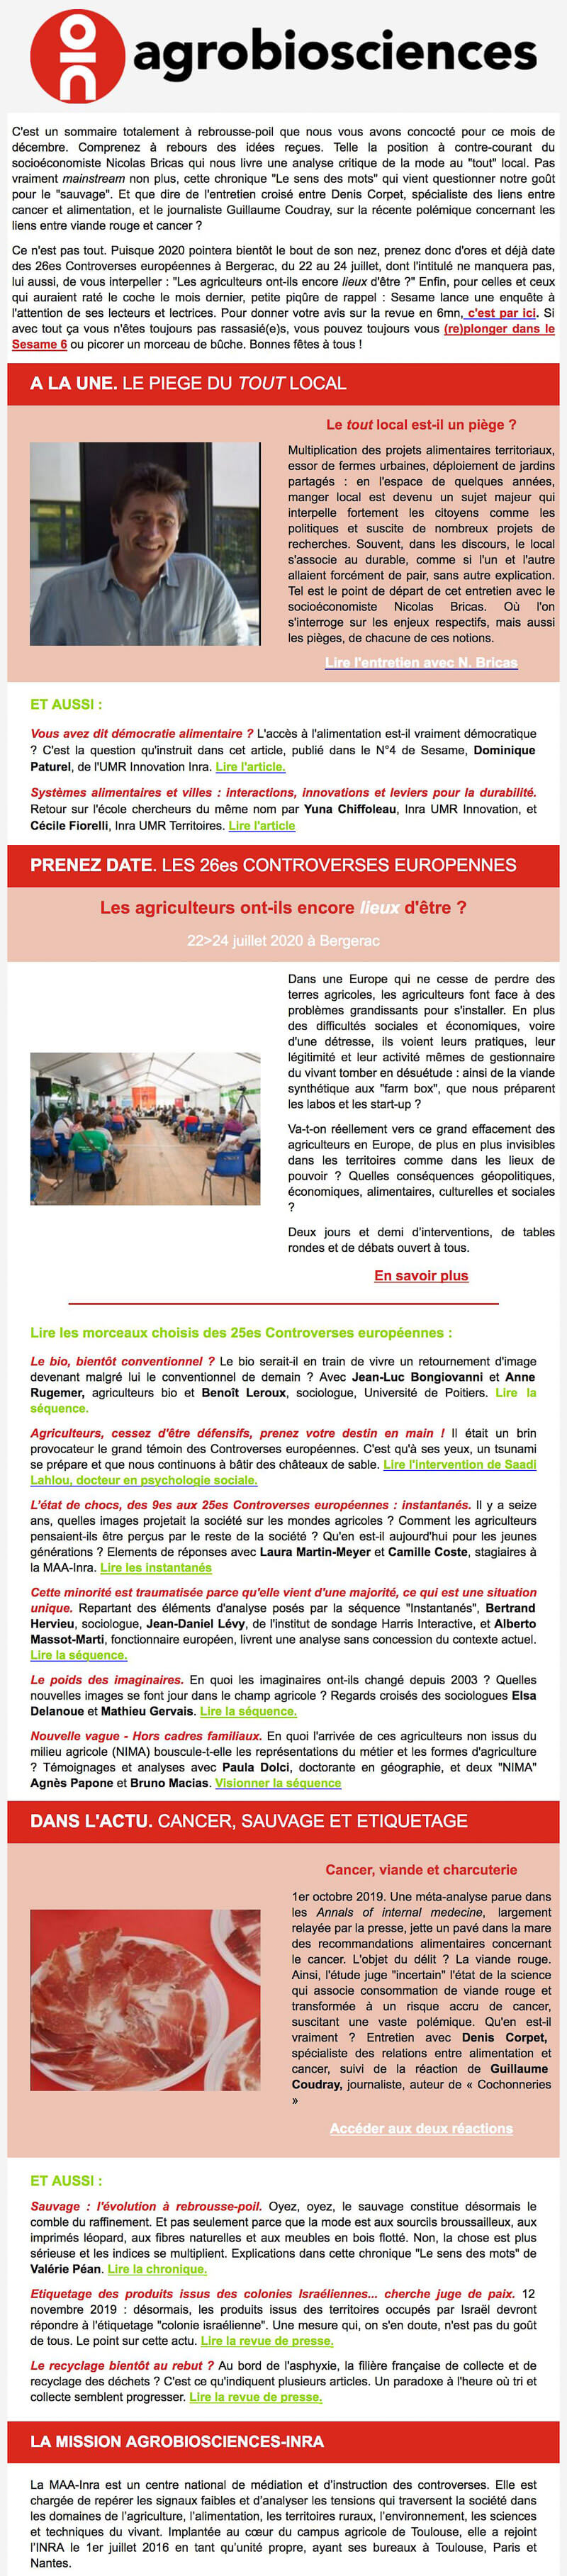 Newsletter Mission Agrobiosciences - Inra